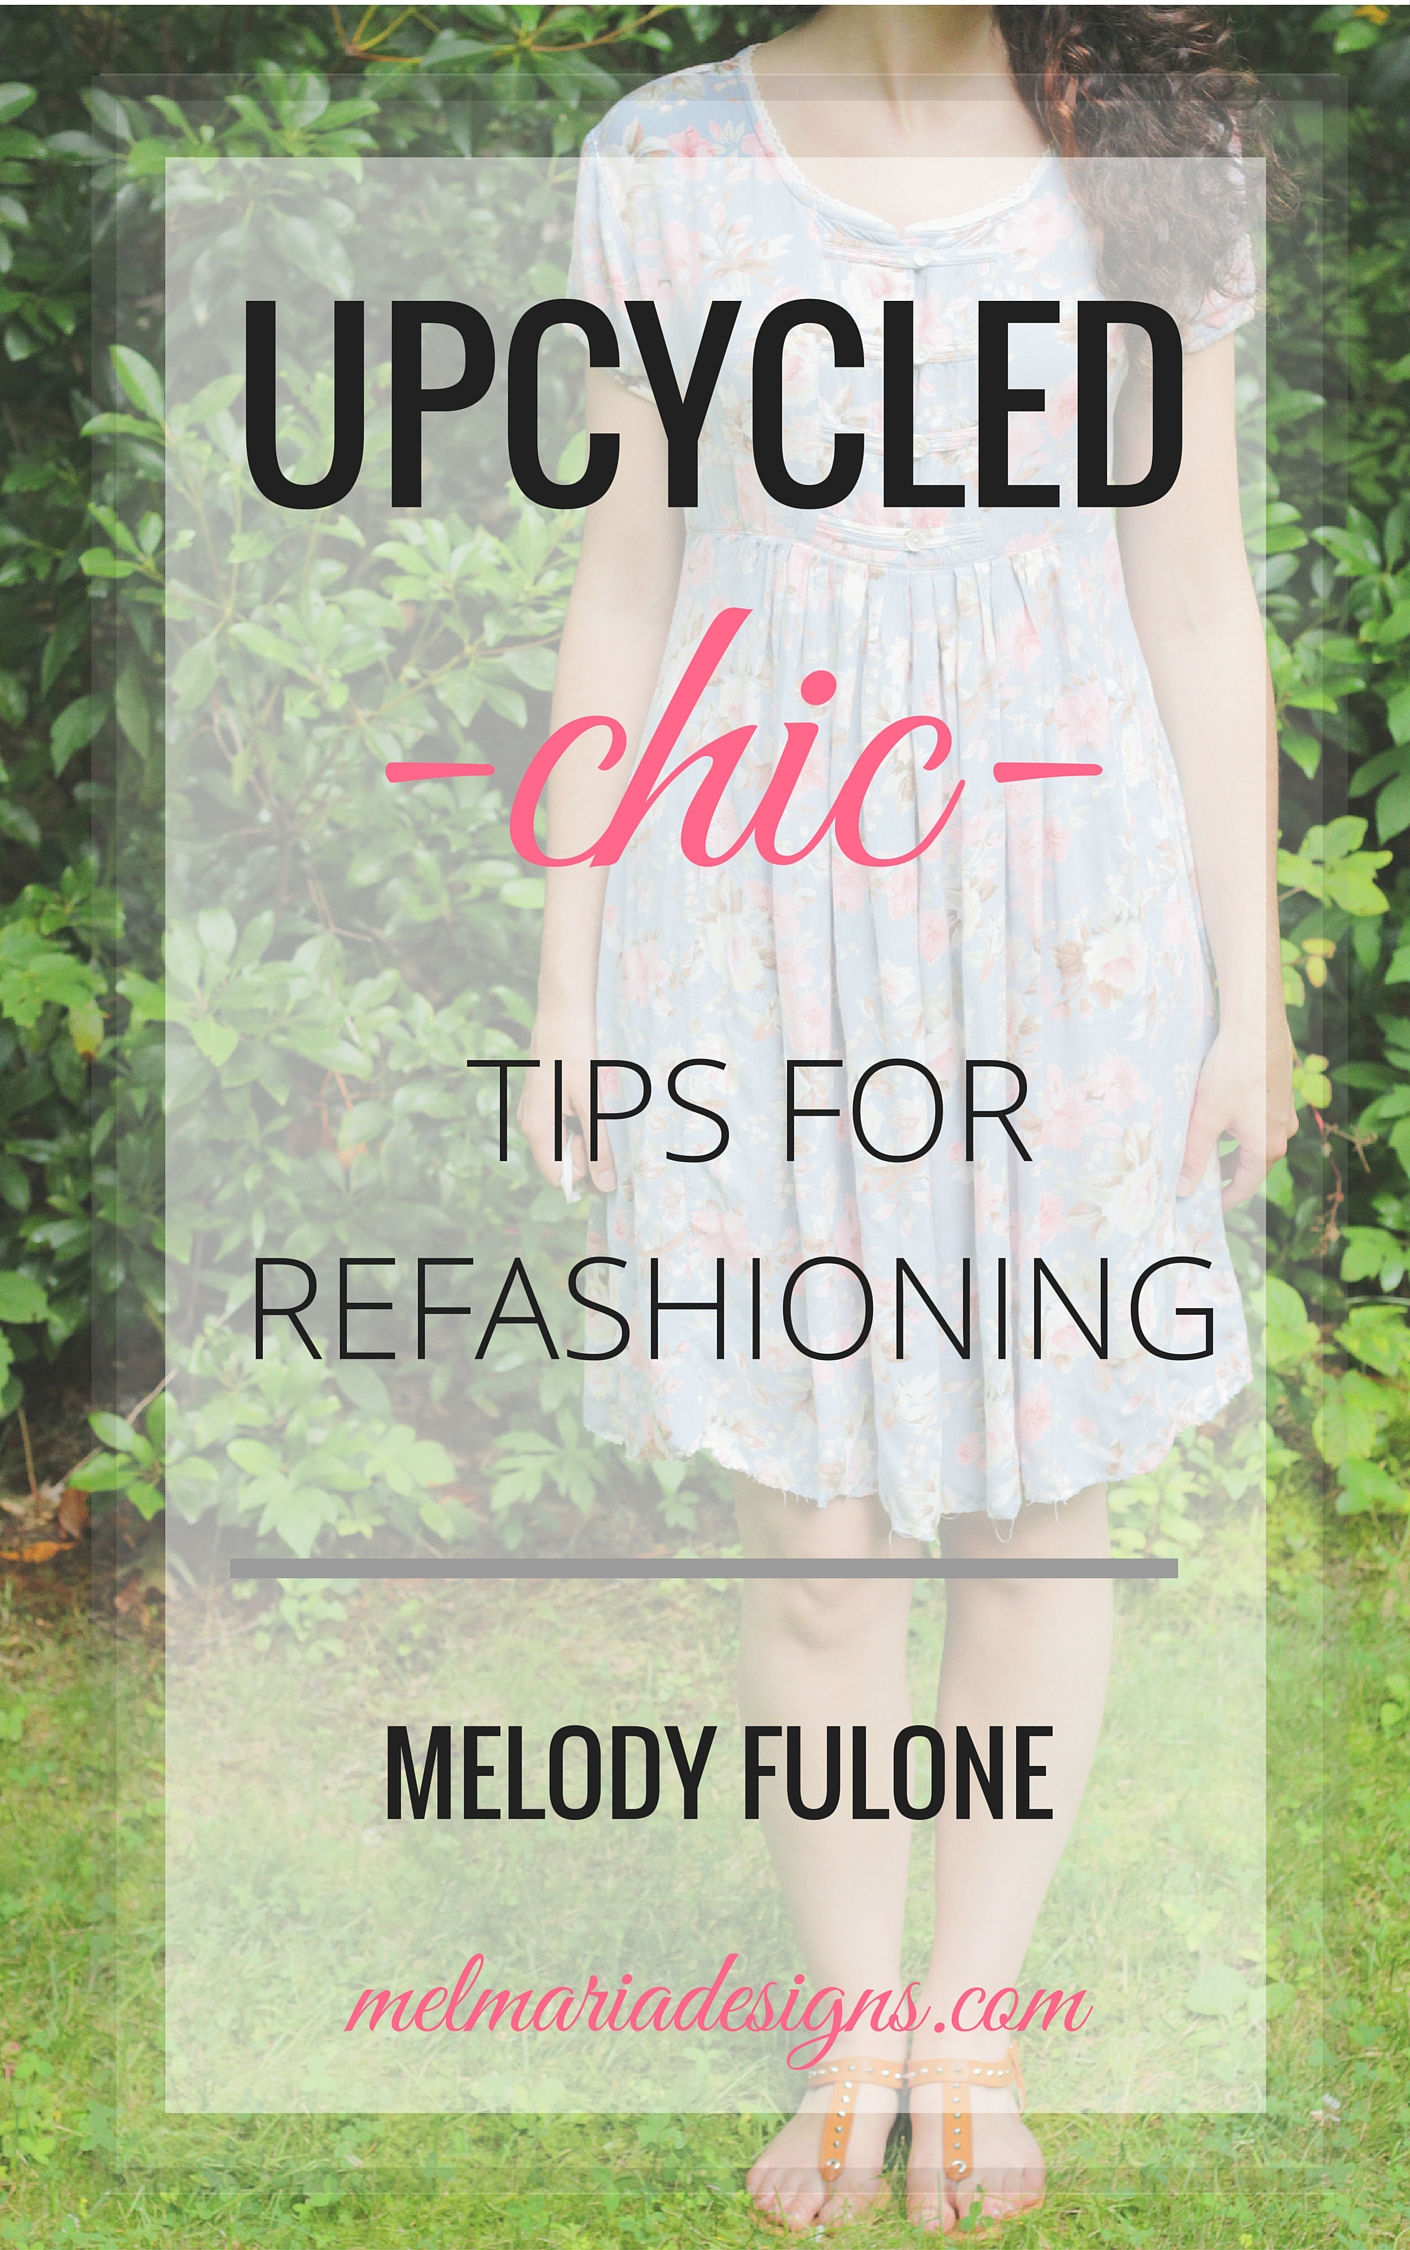 Upcycled Chic- Tips for Refashioning Clothing